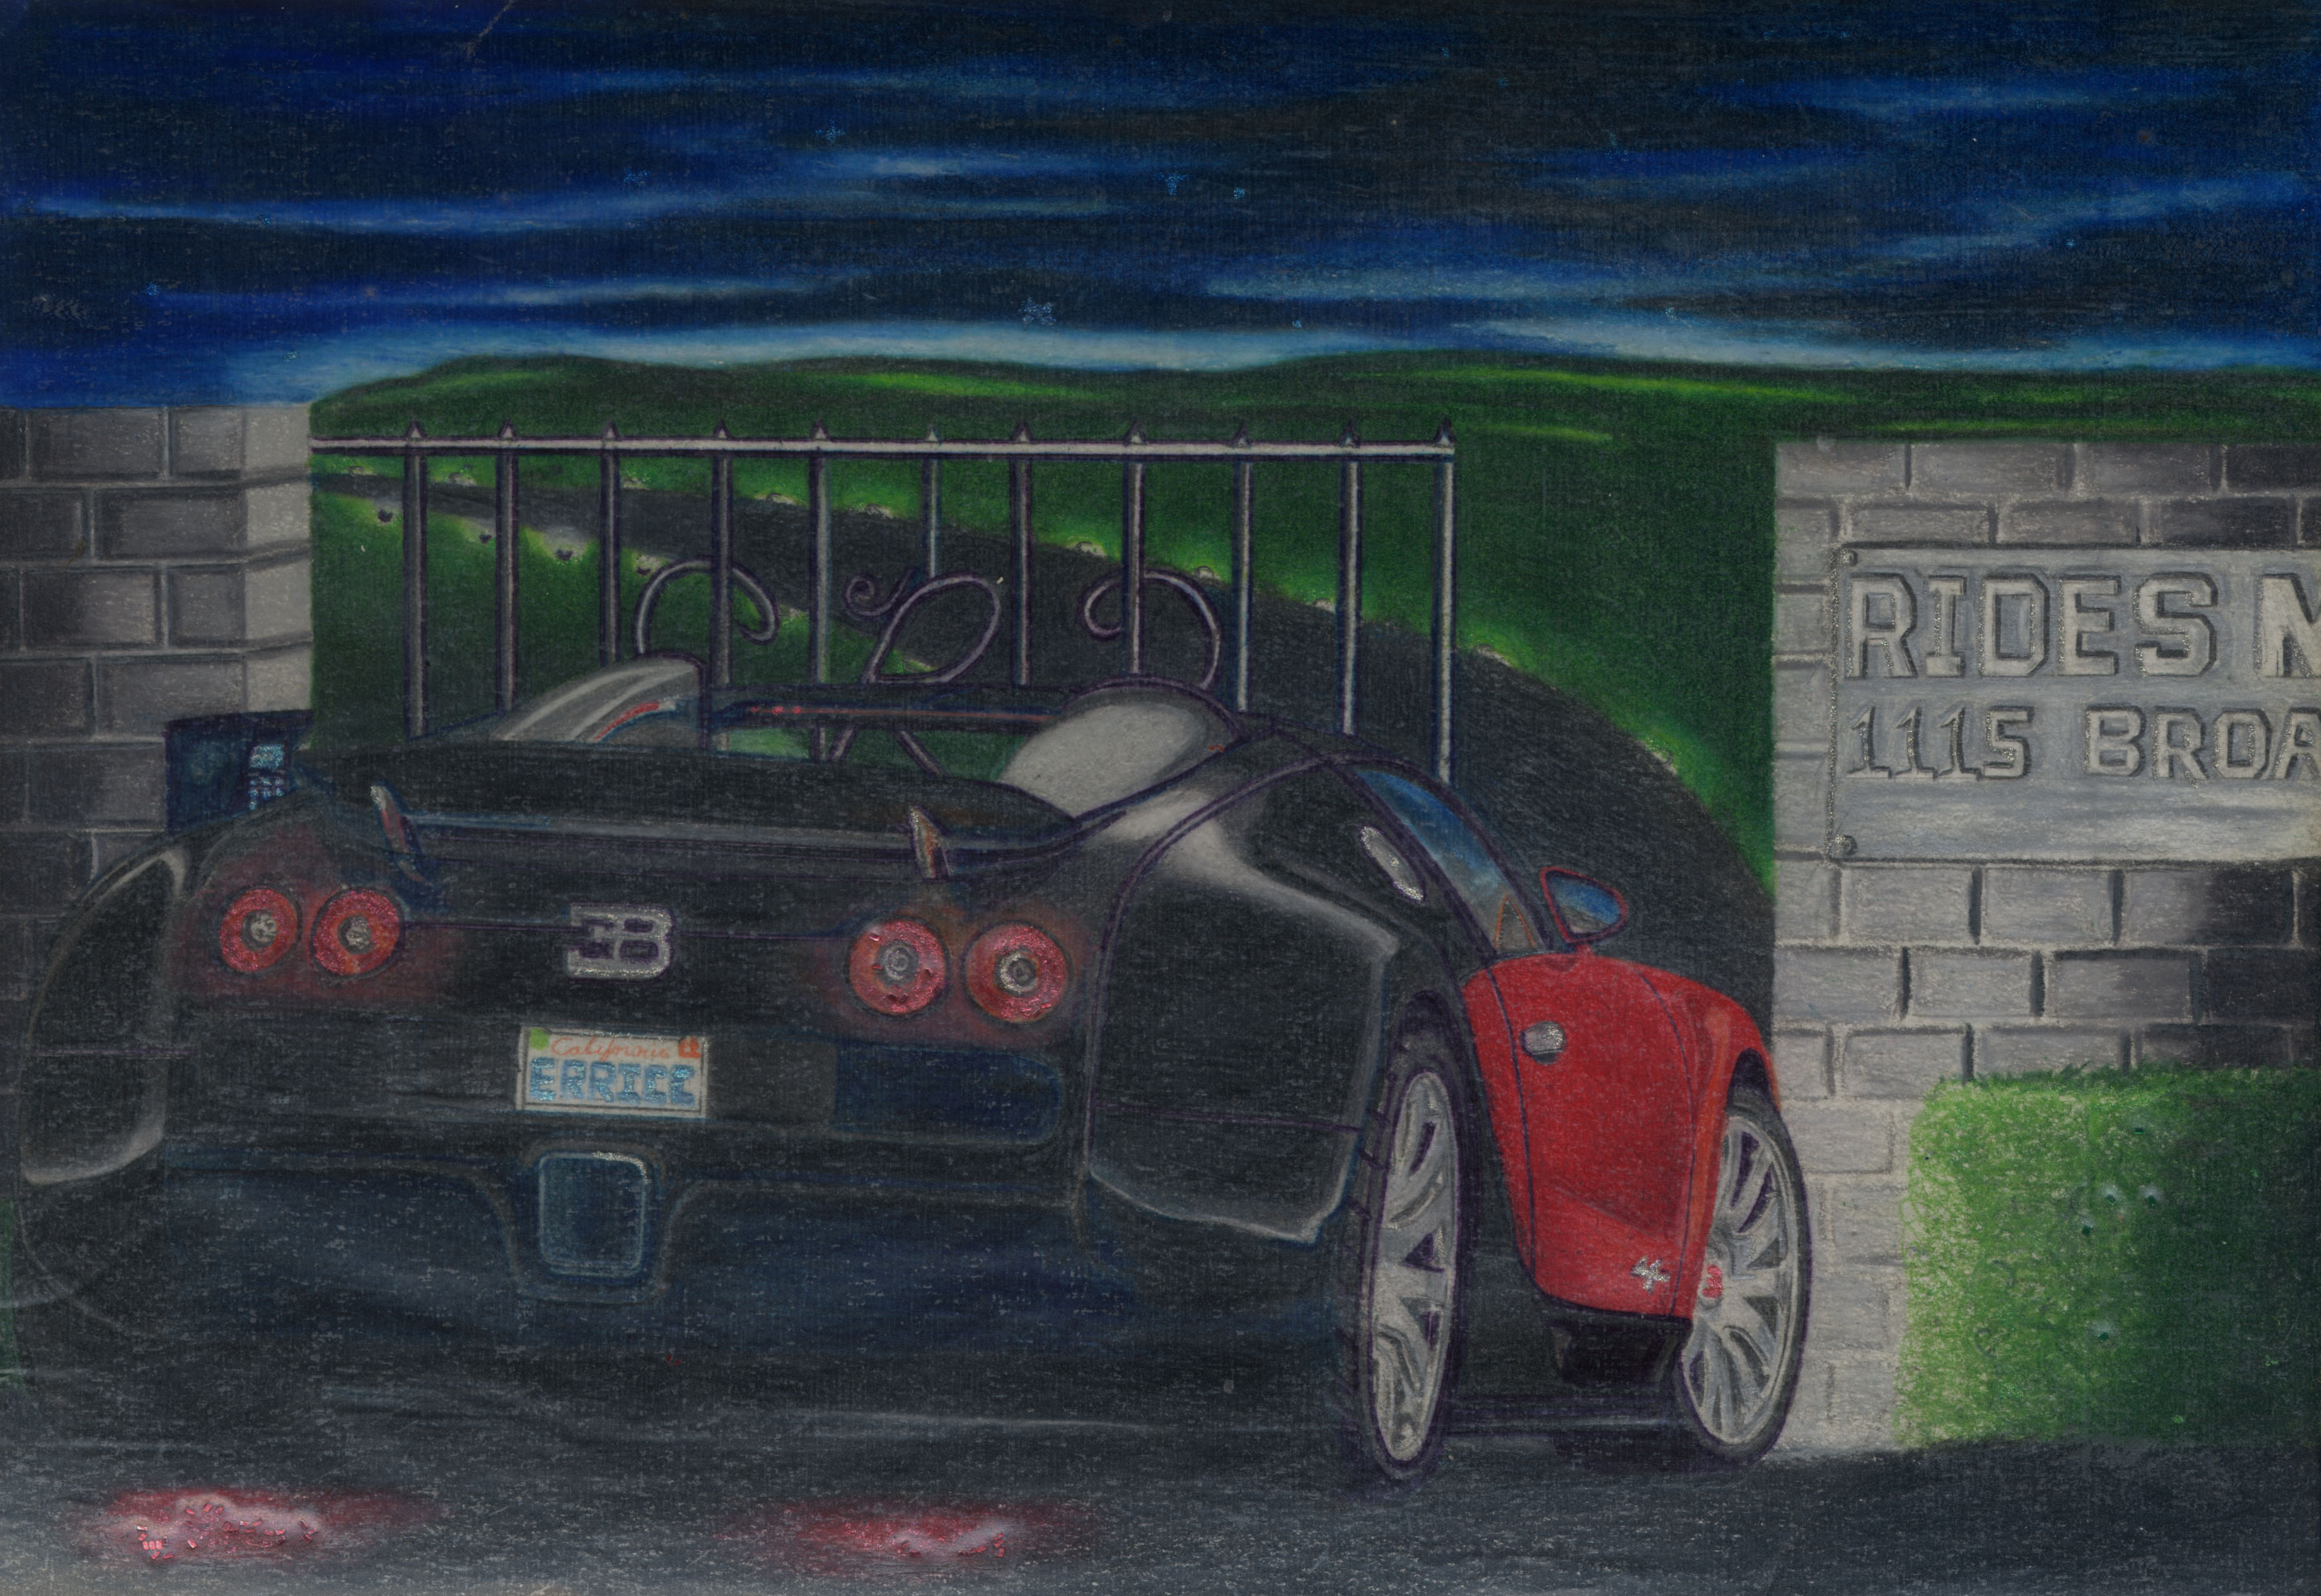 rides cars erricc pickett represa california drawing art